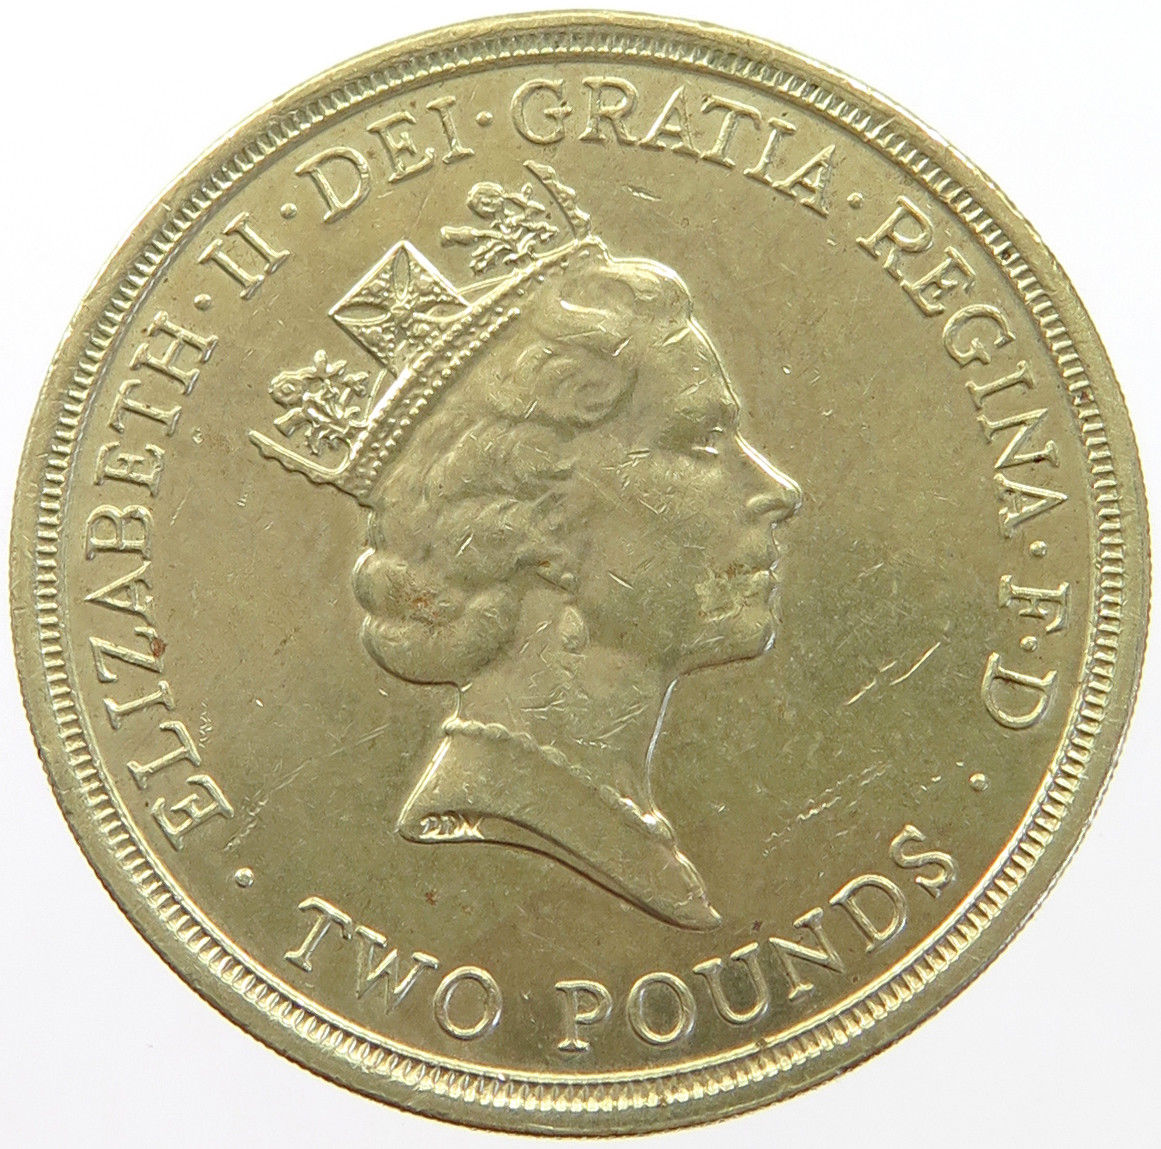 Two Pounds 1995 WW2: Photo Great Britain Two Pounds 1995